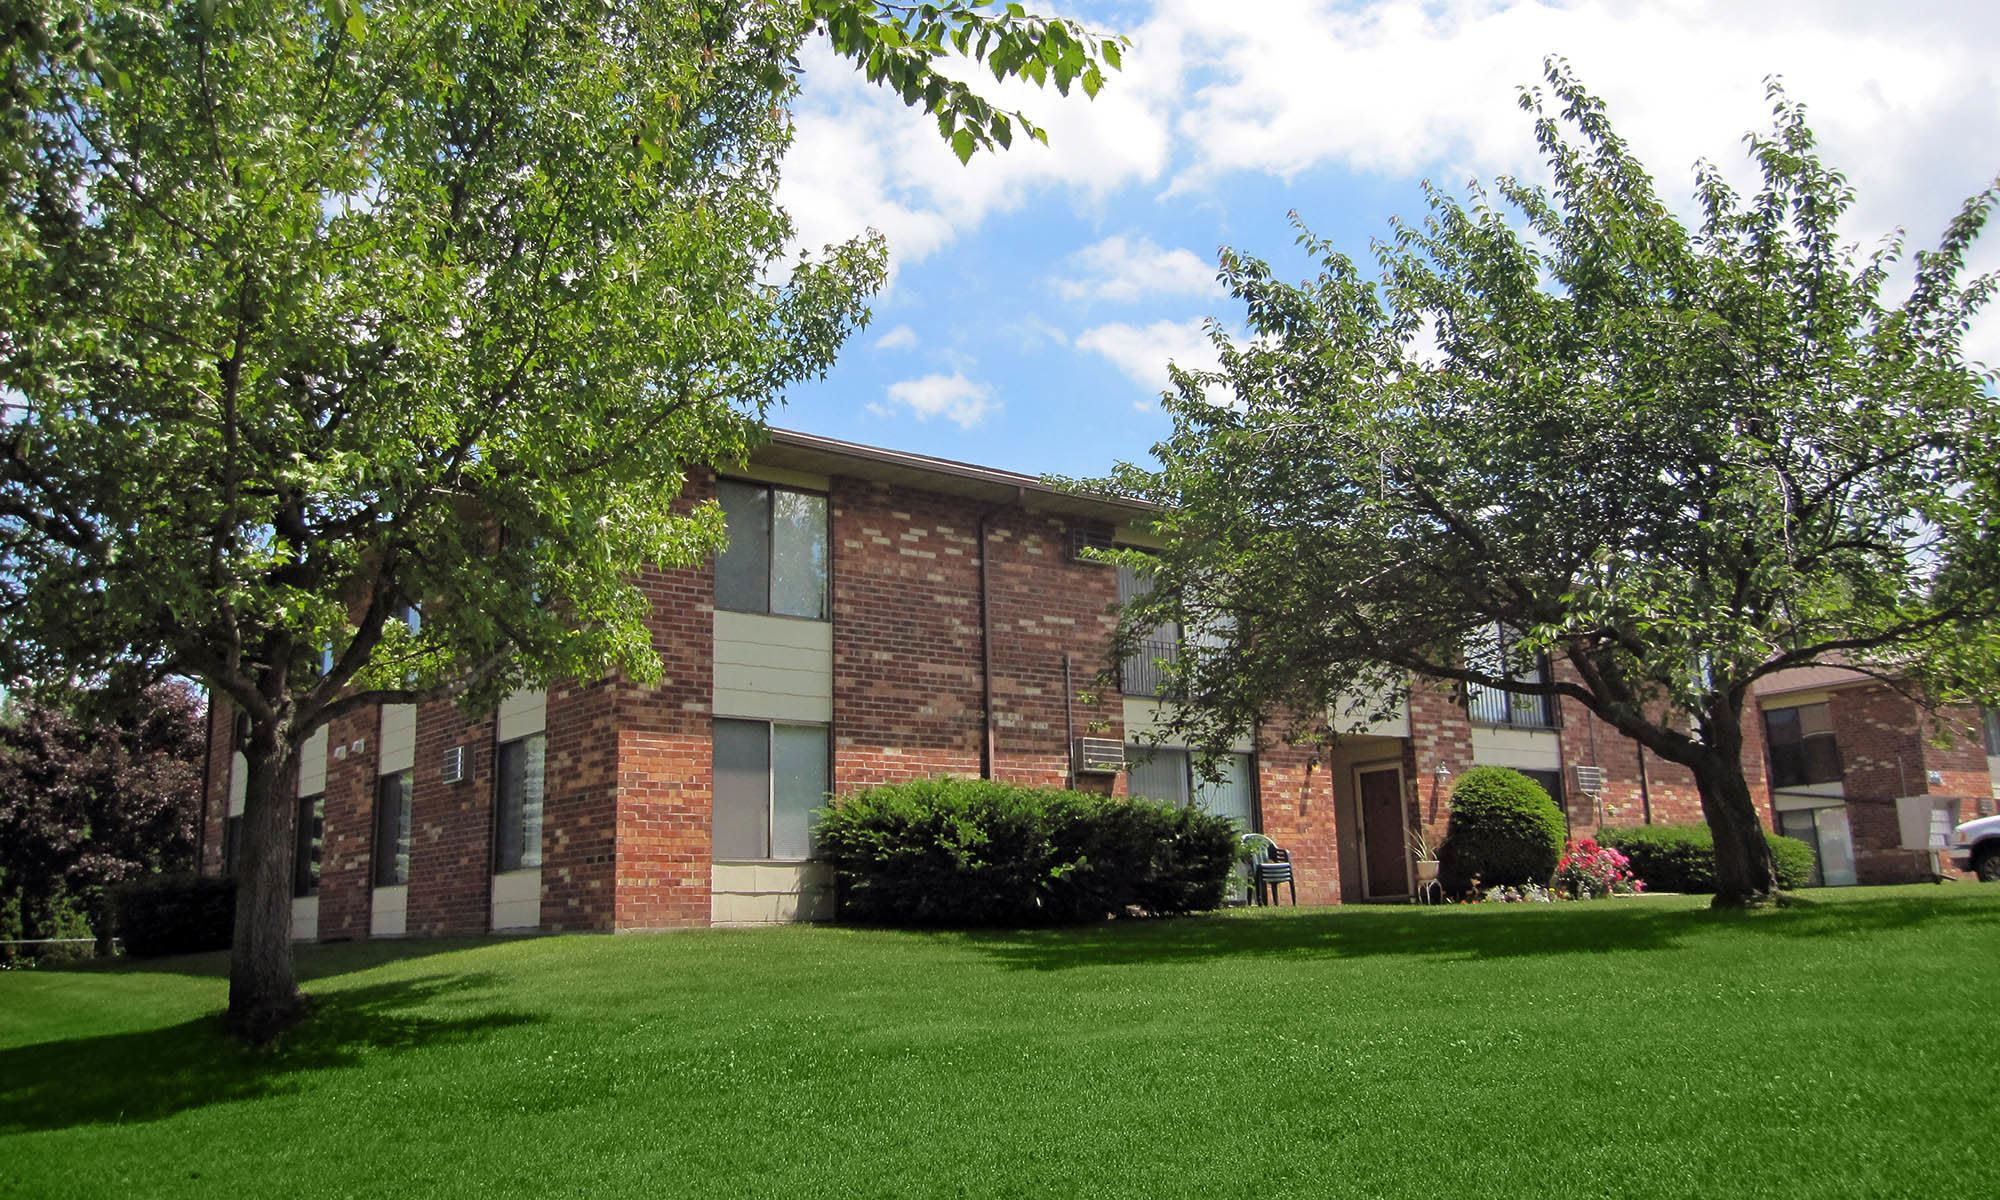 Apartments in Spencerport, NY